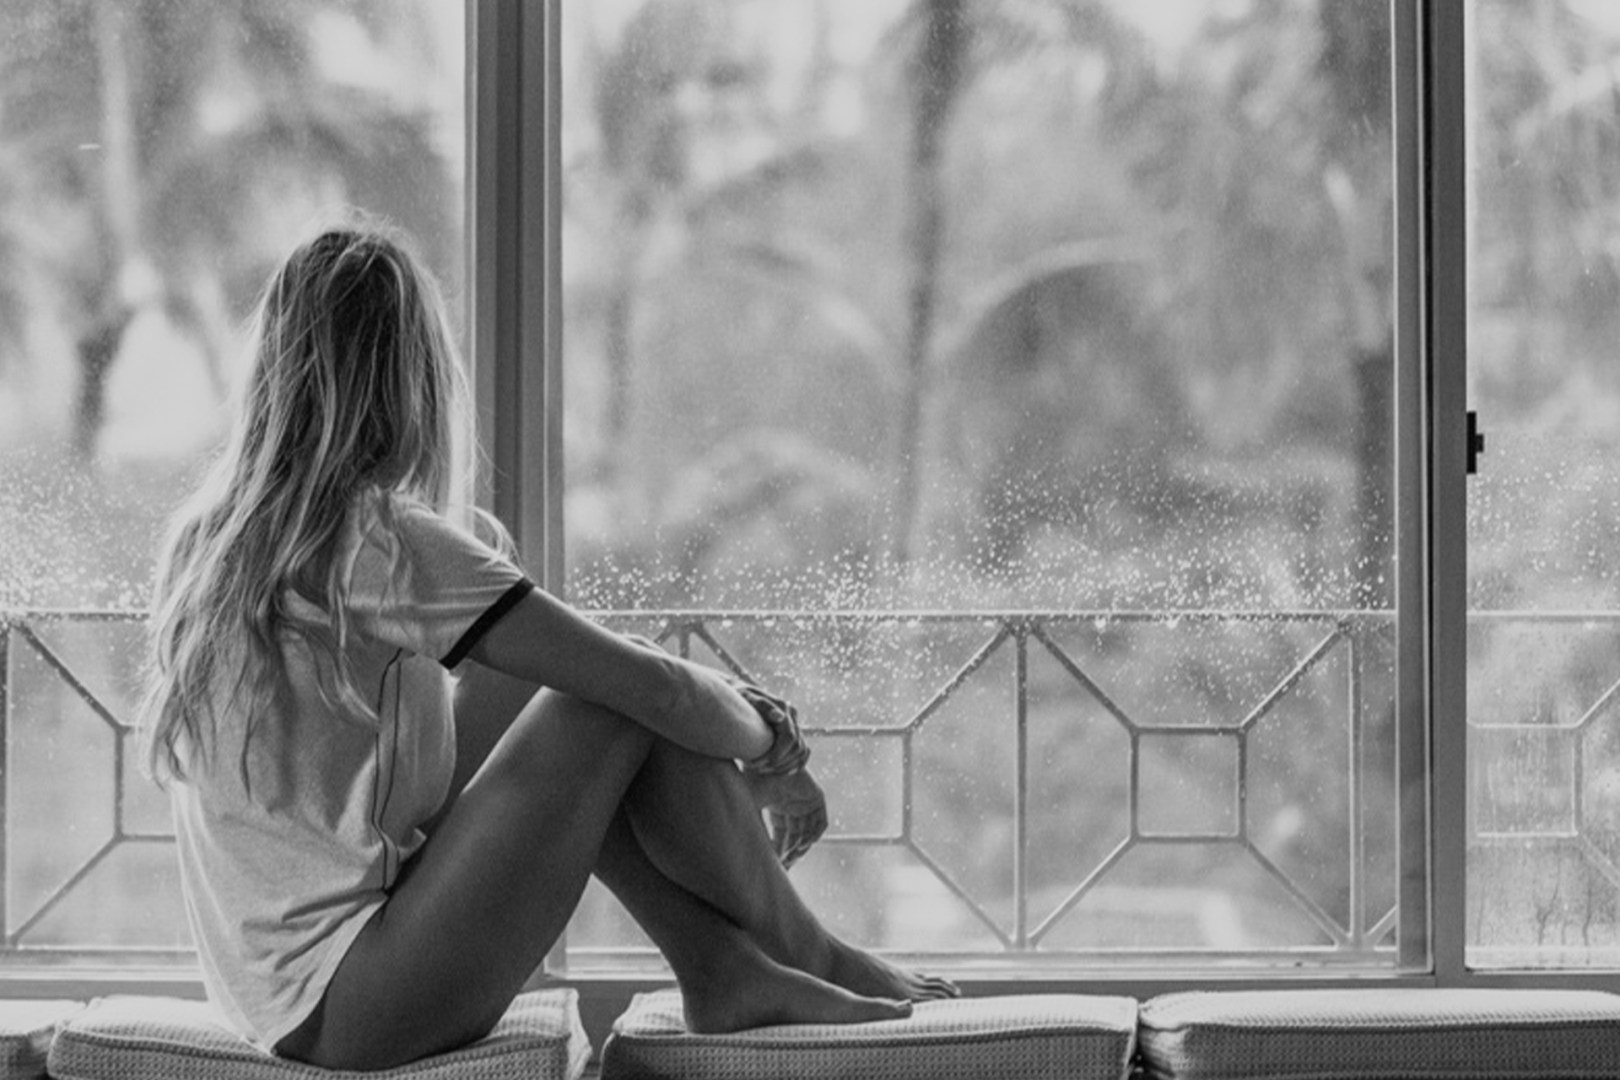 A black and white picture of a young woman looking out the window on a rainy day.